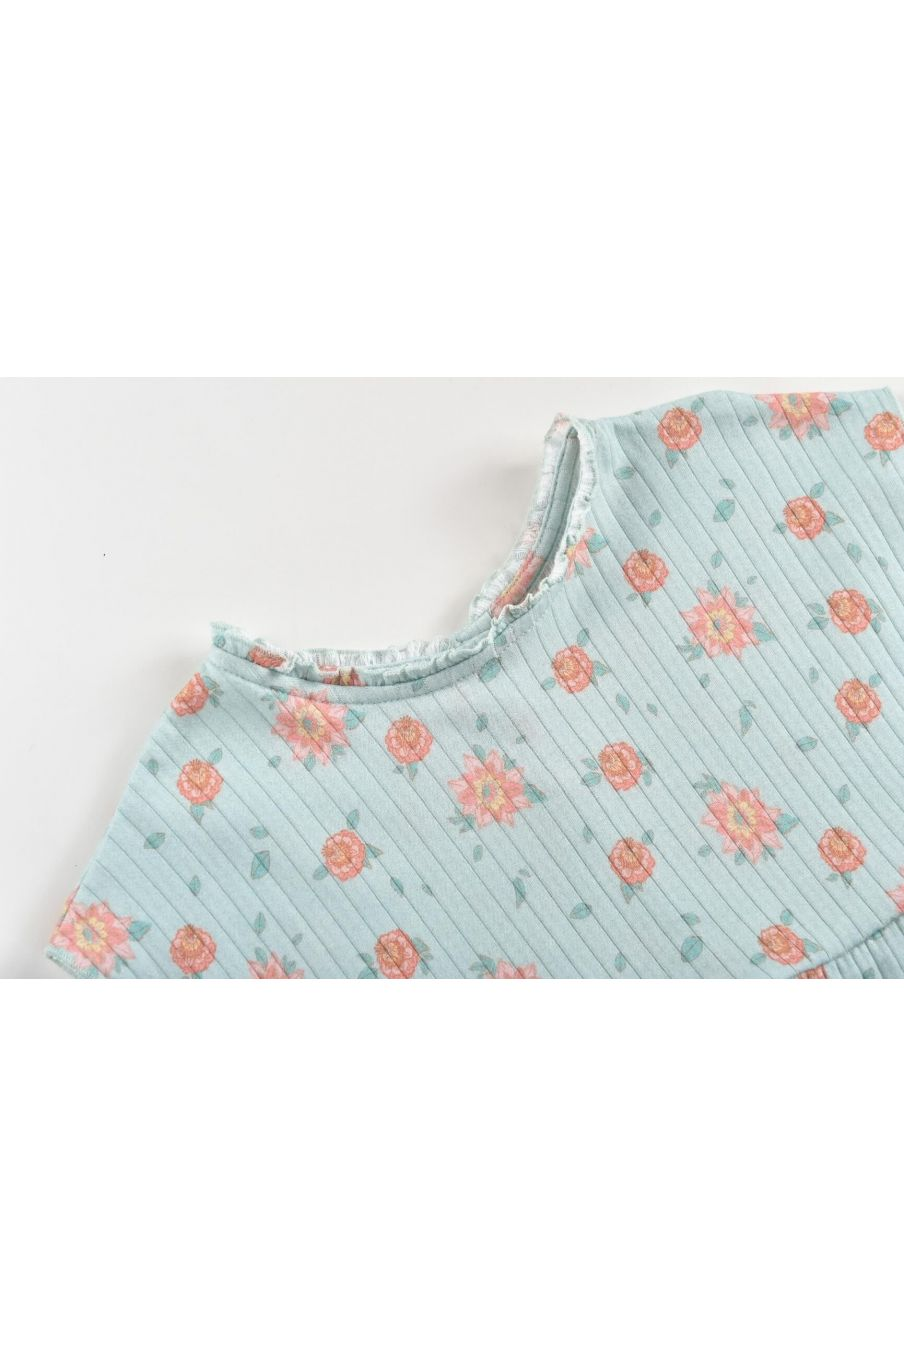 boheme chic vintage top fille angika vintage blue flowers